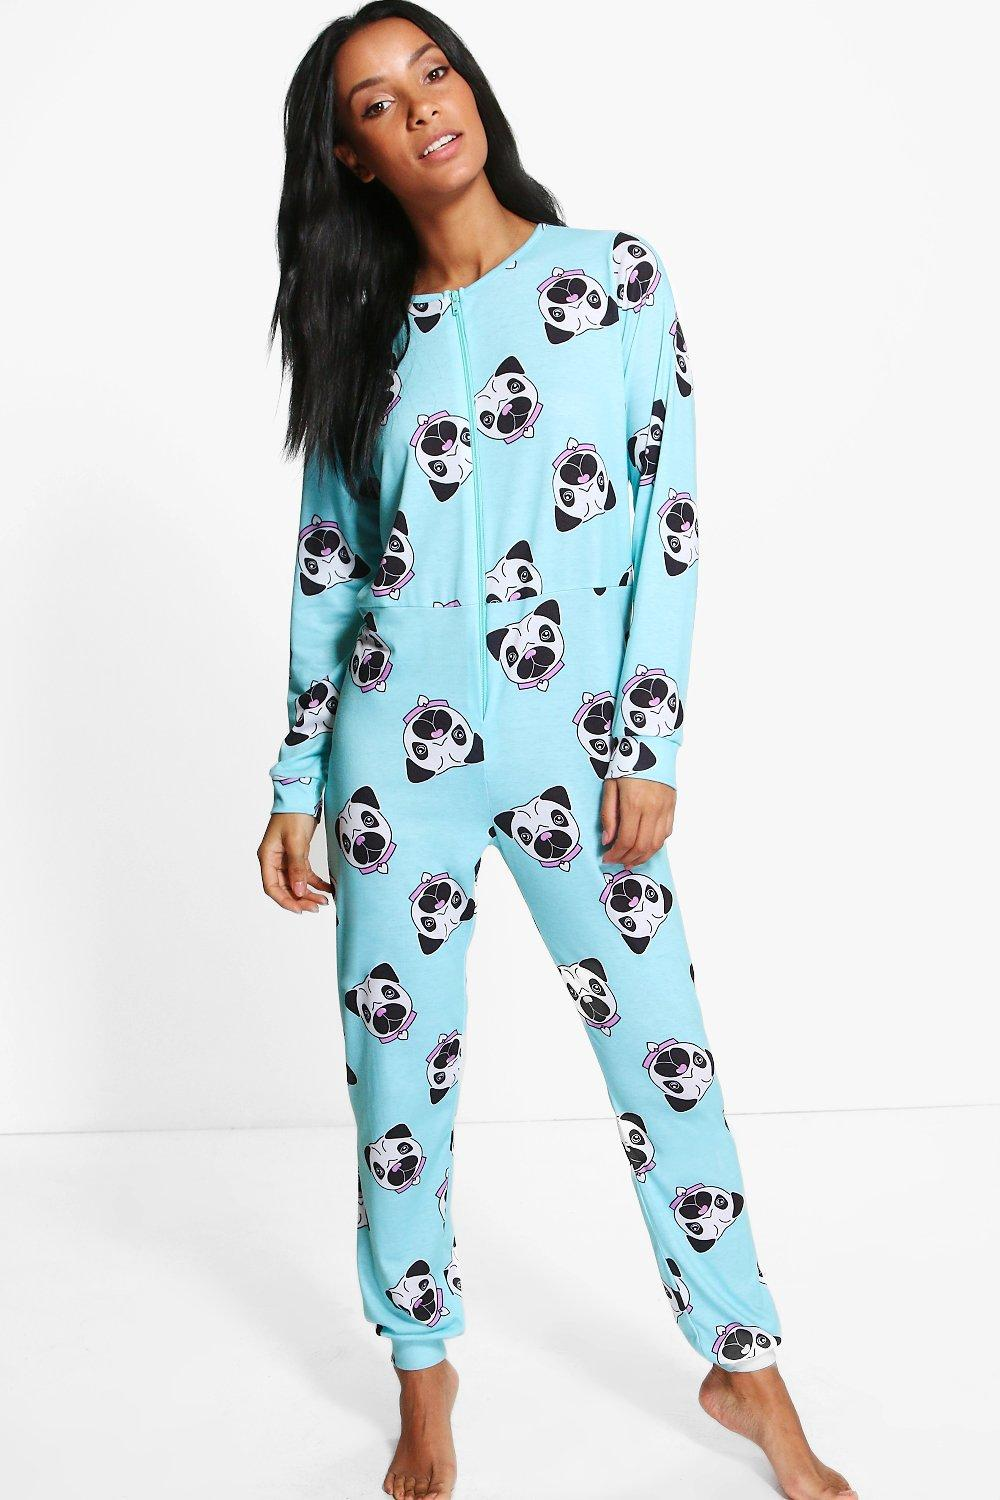 Onesies Central is a leading onesies online shop in Australia. We sell animal onesies wholesale and retail for adults, kids and babies. We ship worldwide and .